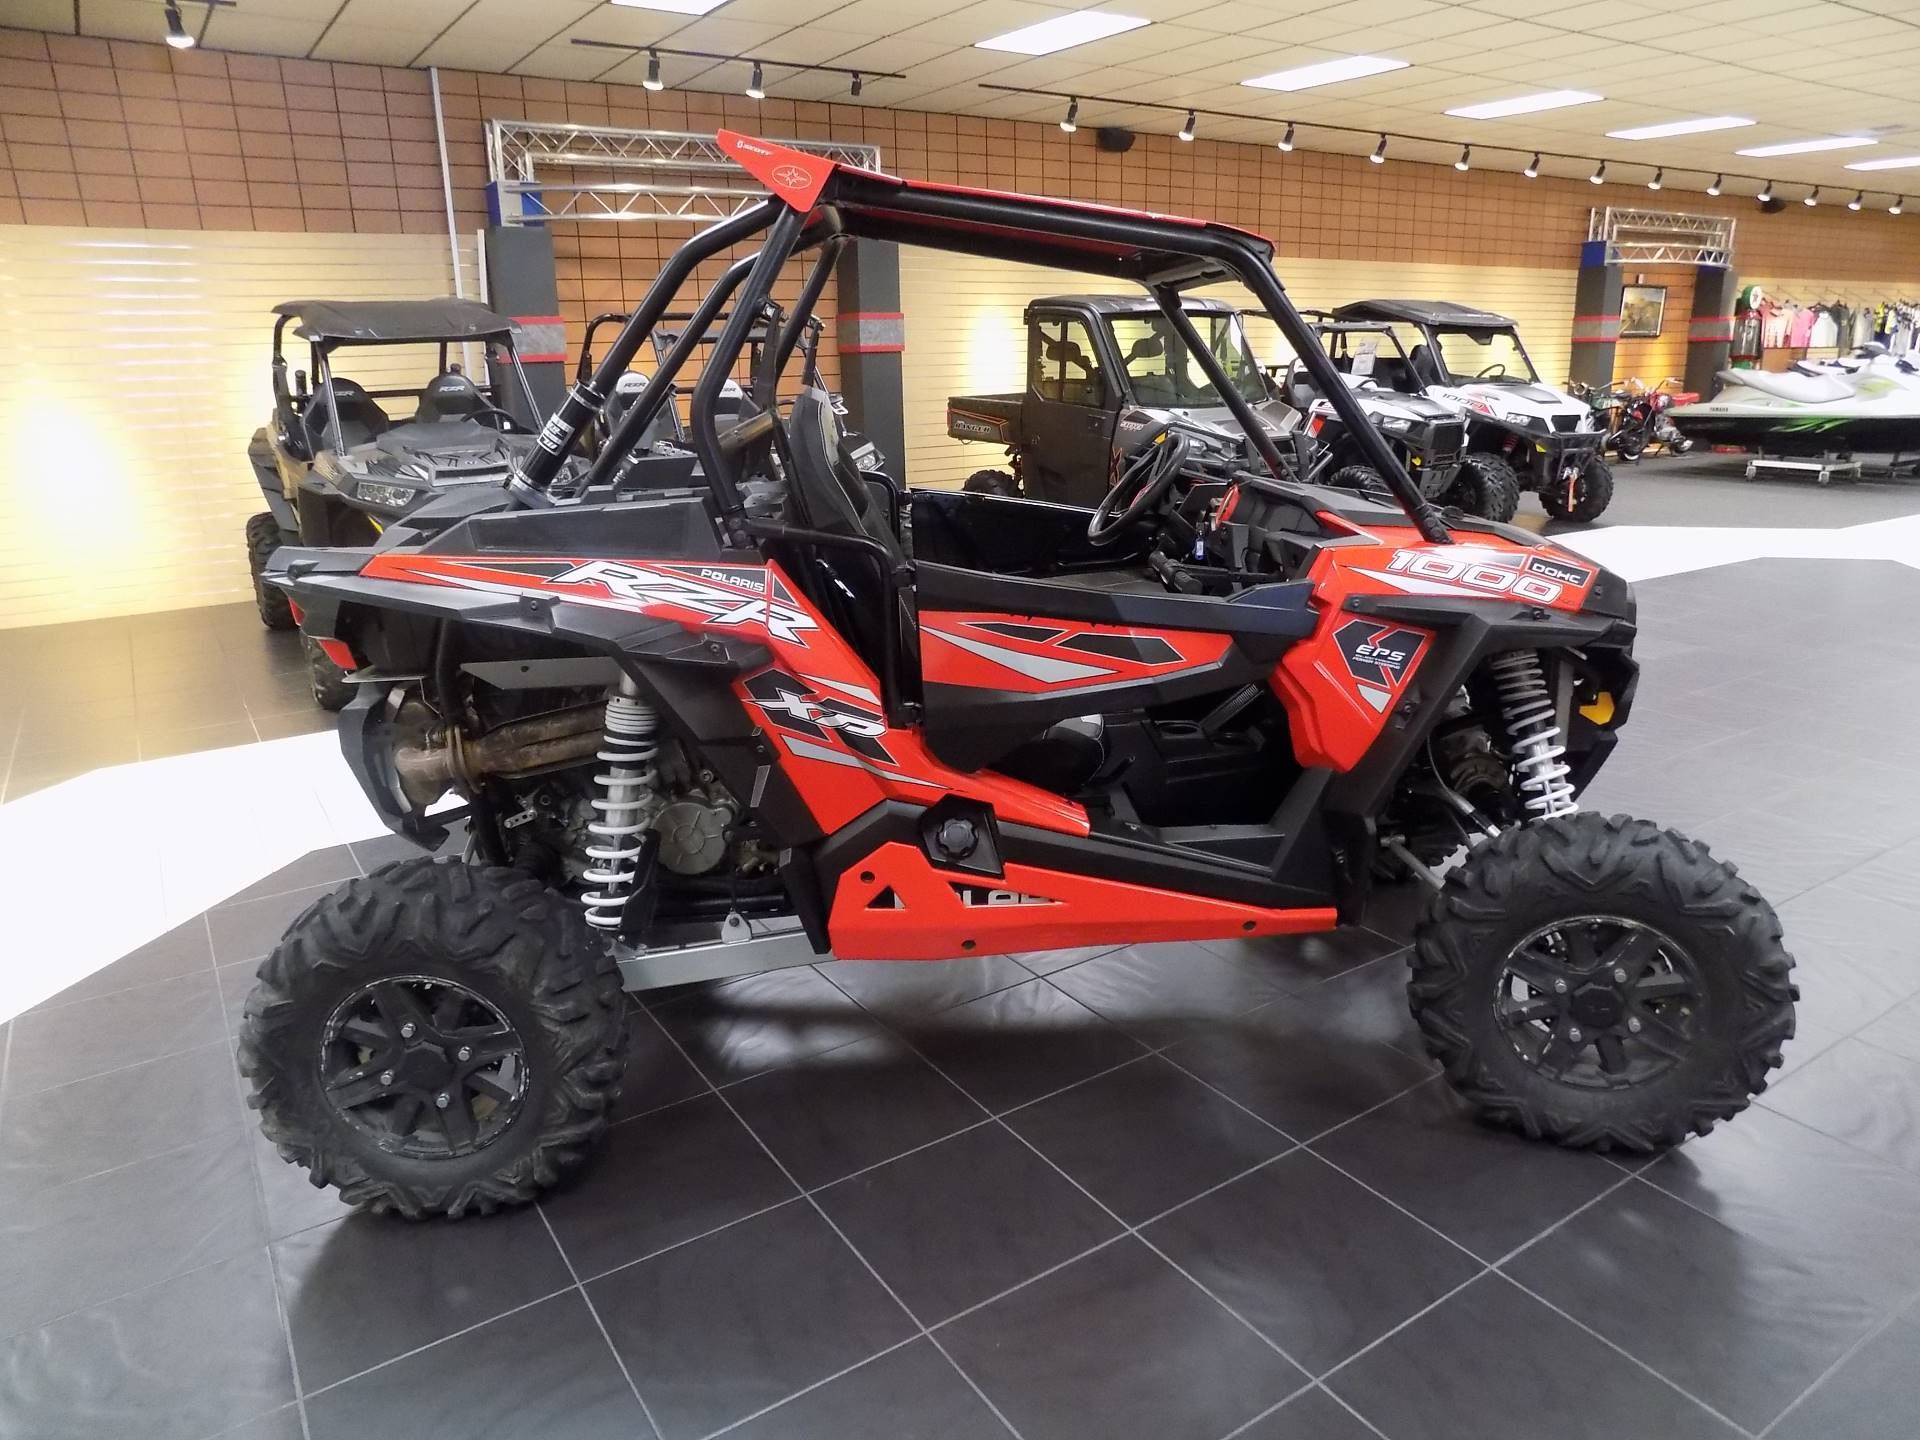 2015 rzr 1000 xp pictures information for sale by dealer autos post. Black Bedroom Furniture Sets. Home Design Ideas